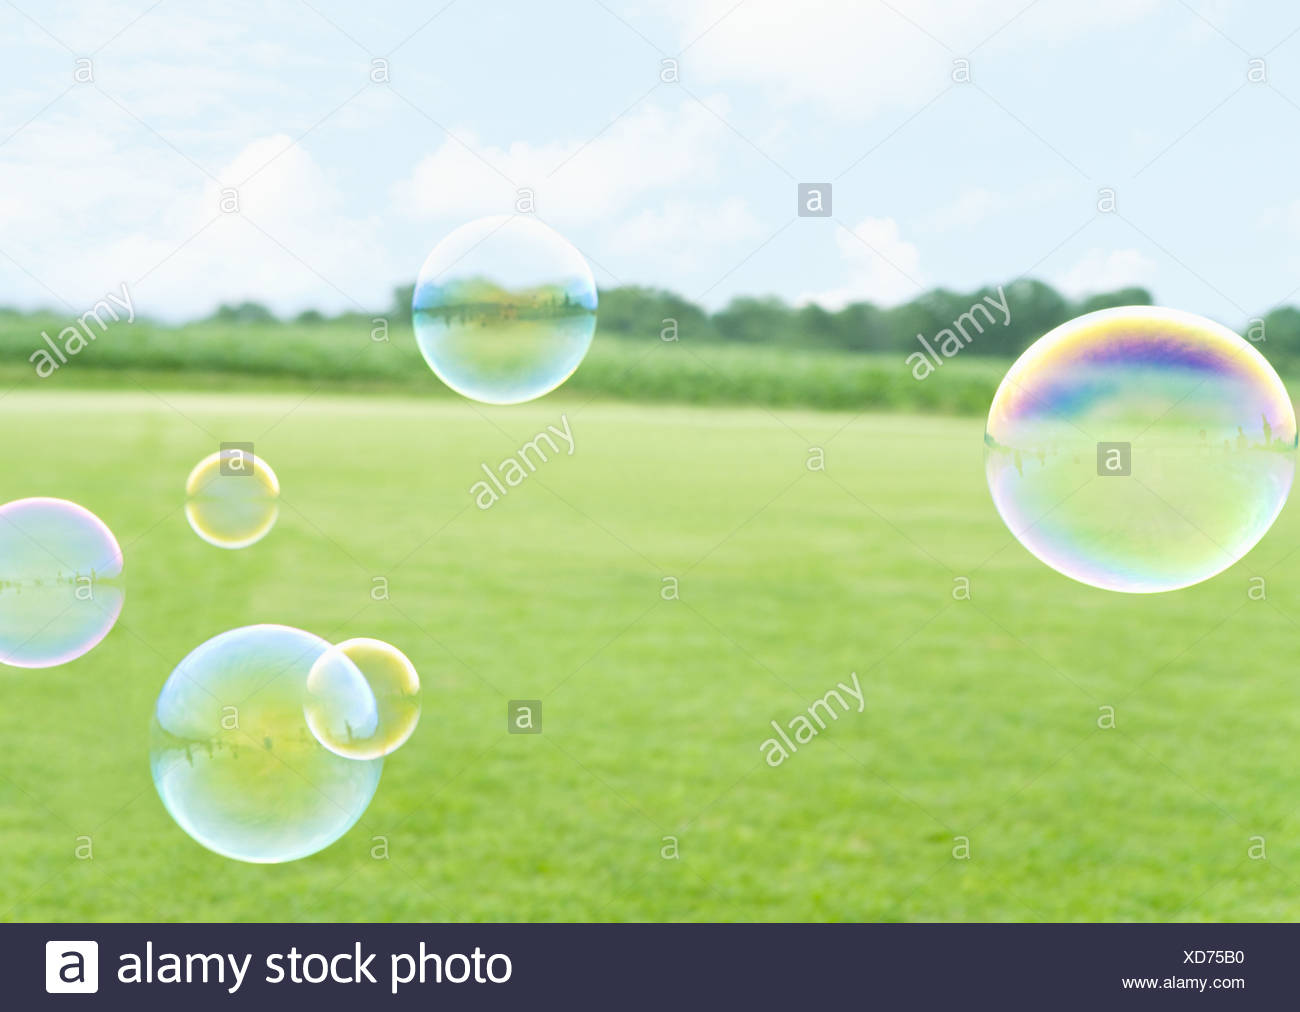 Grass field and bubbles - Stock Image